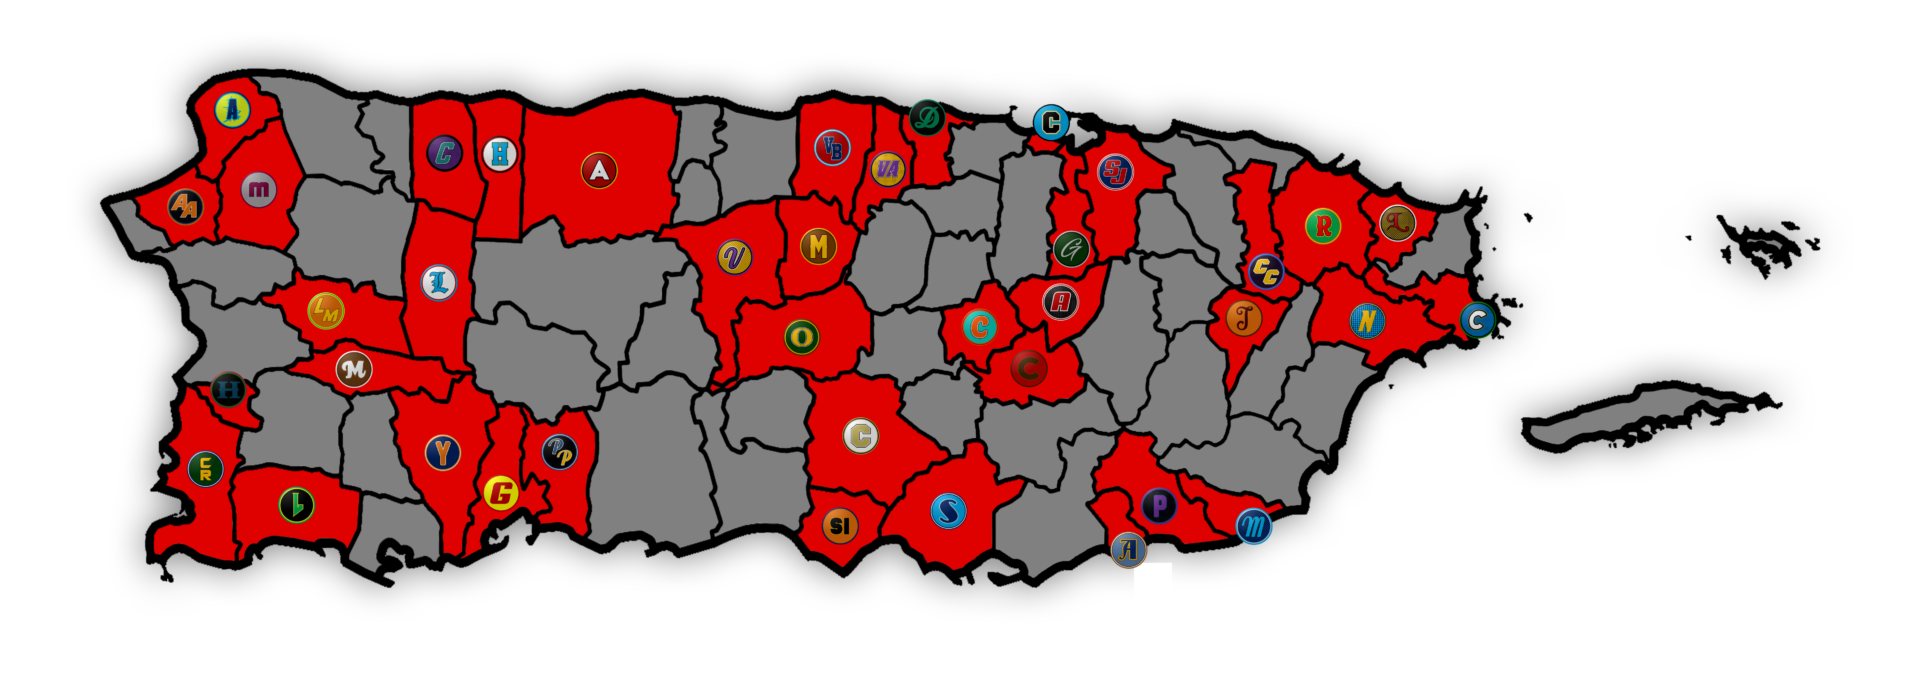 A map of Puerto Rico on which the towns with teams in the Liga Betances are colored in red, with the teams' logos superimposed on the town.